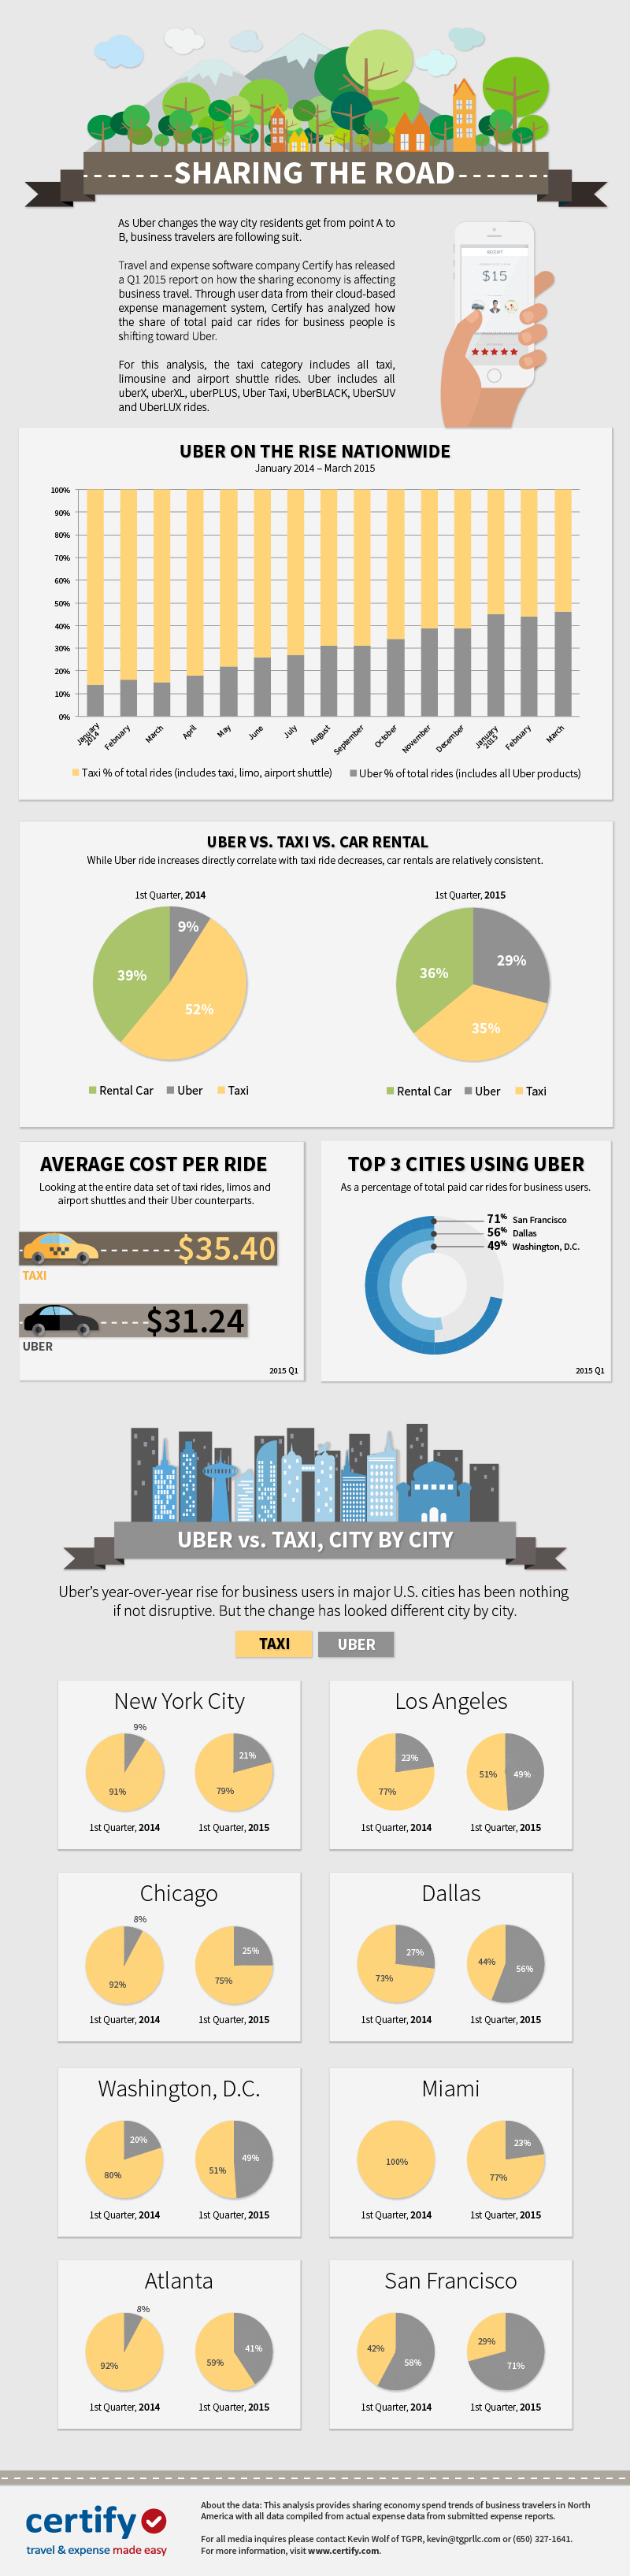 Sharing the Road: Business Travelers Increasingly Choose Uber